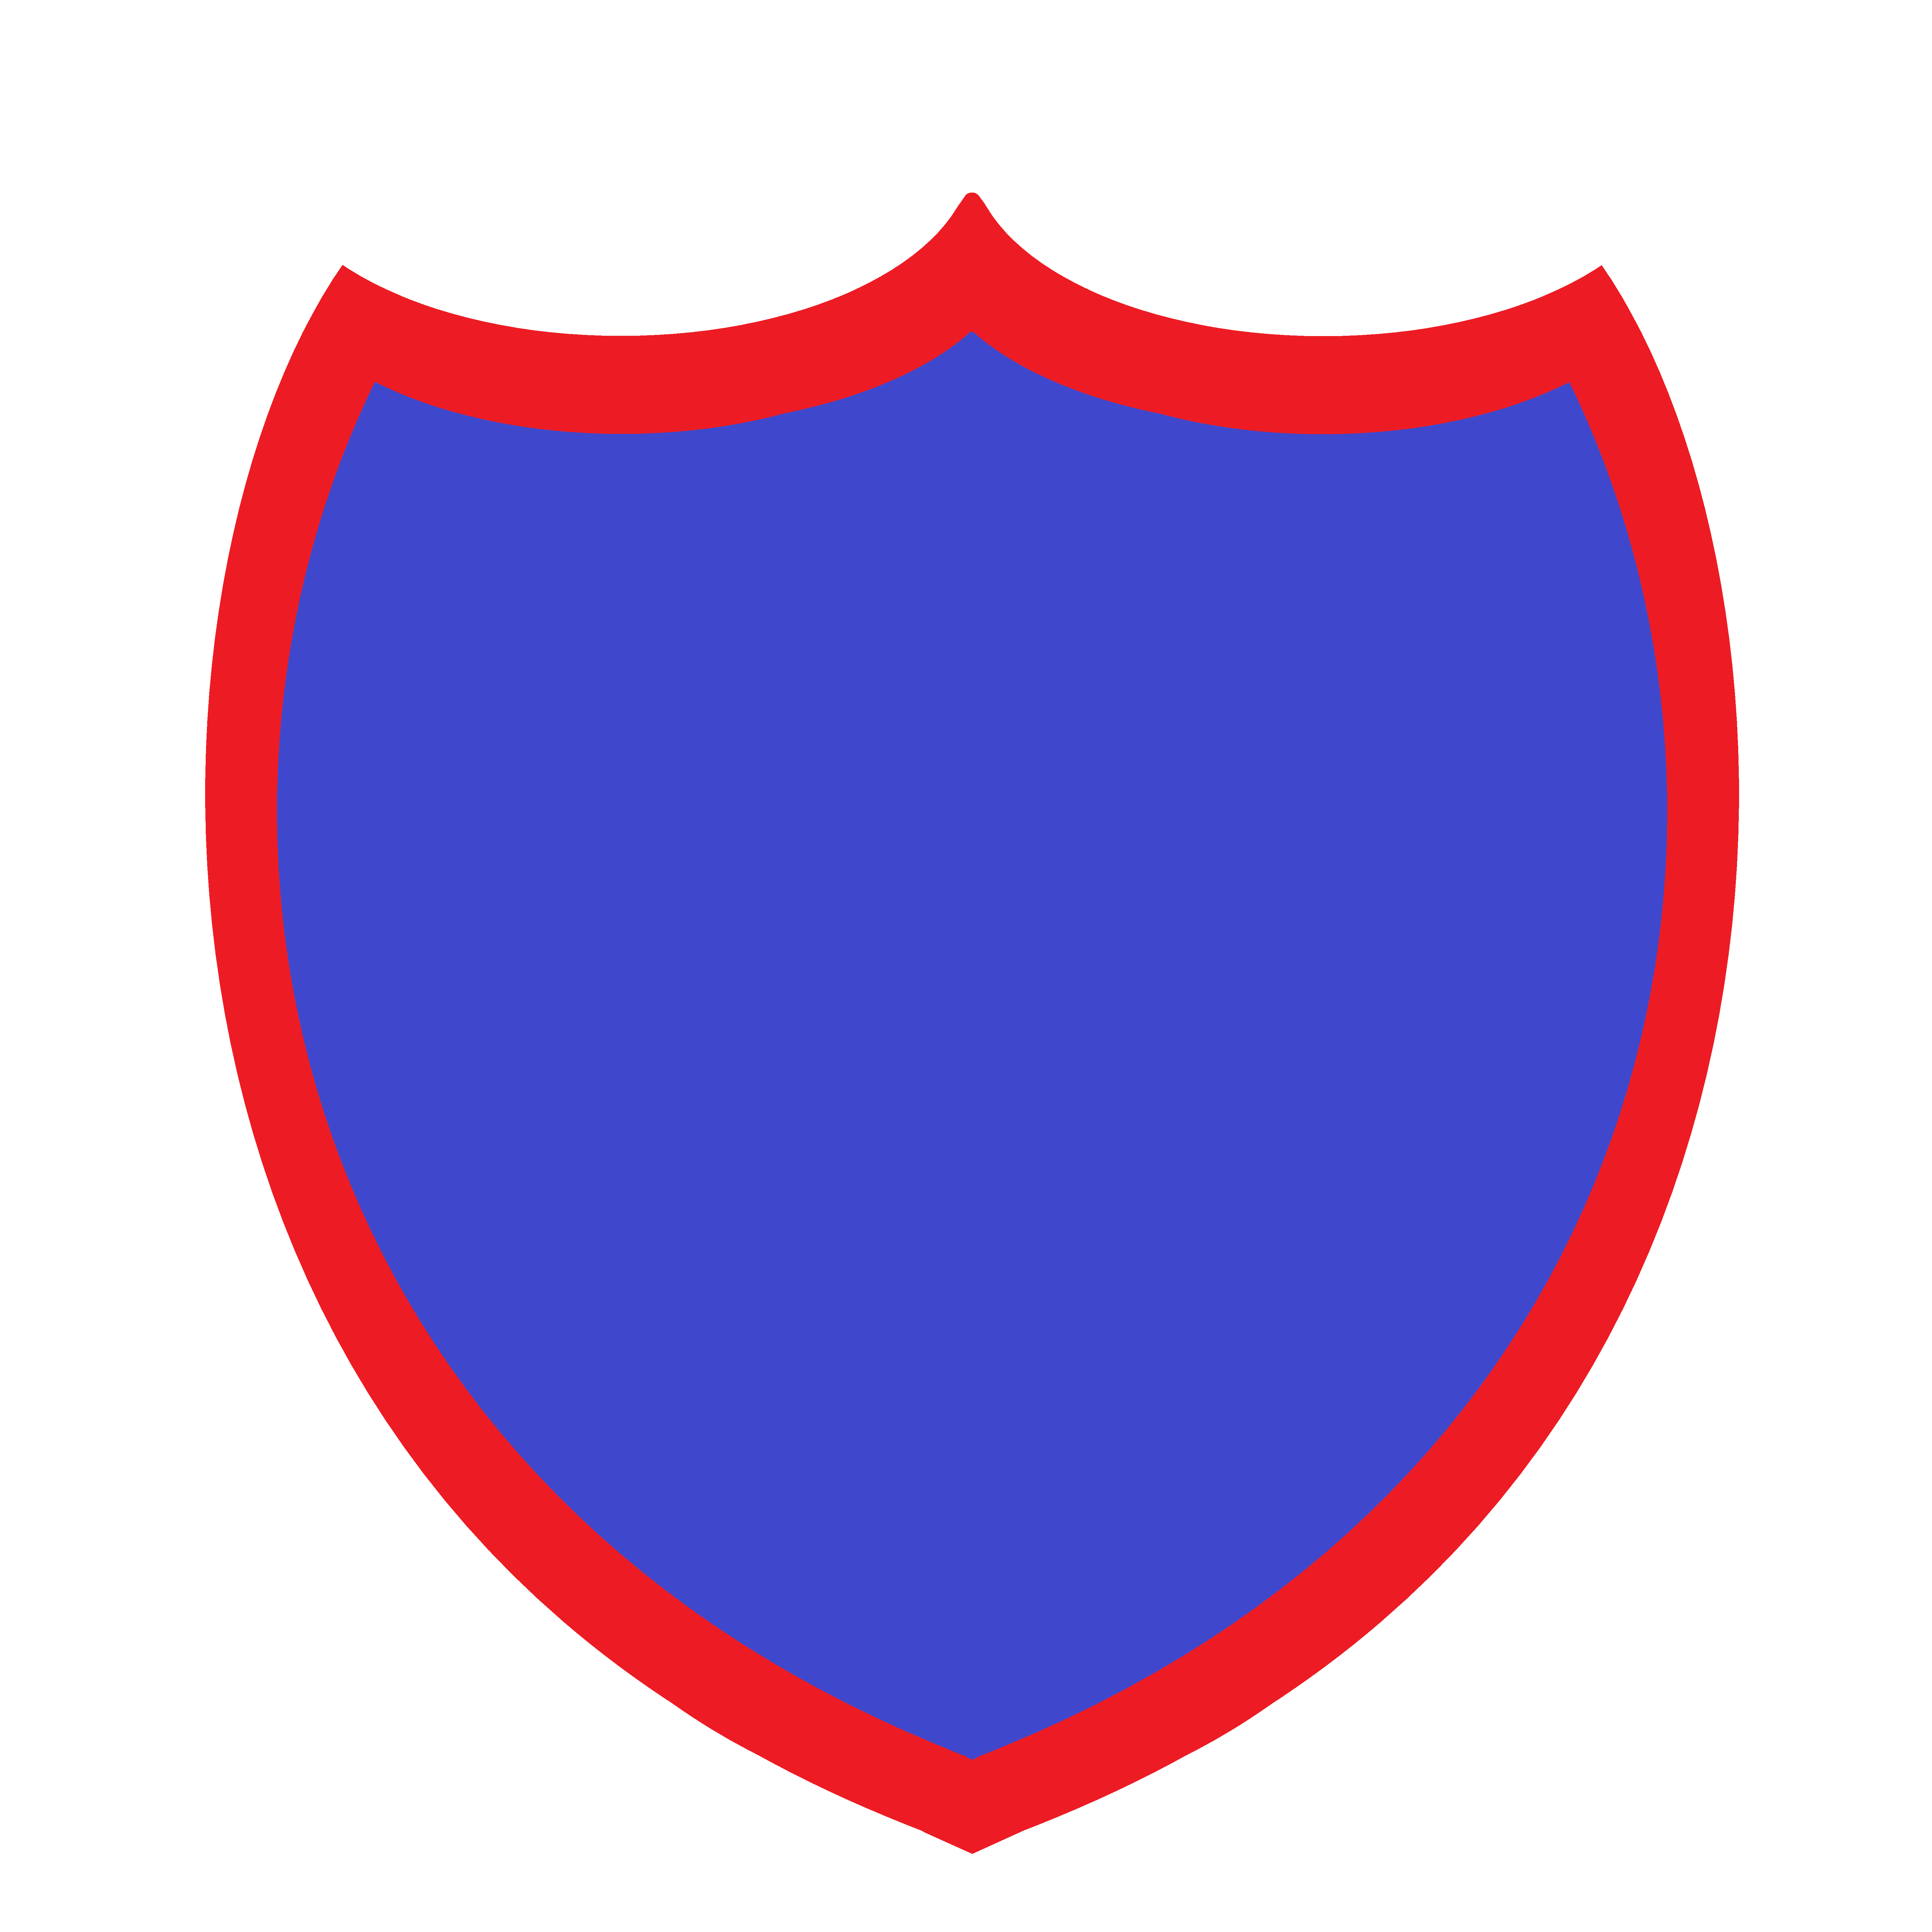 6640x6640 Shield Free Images